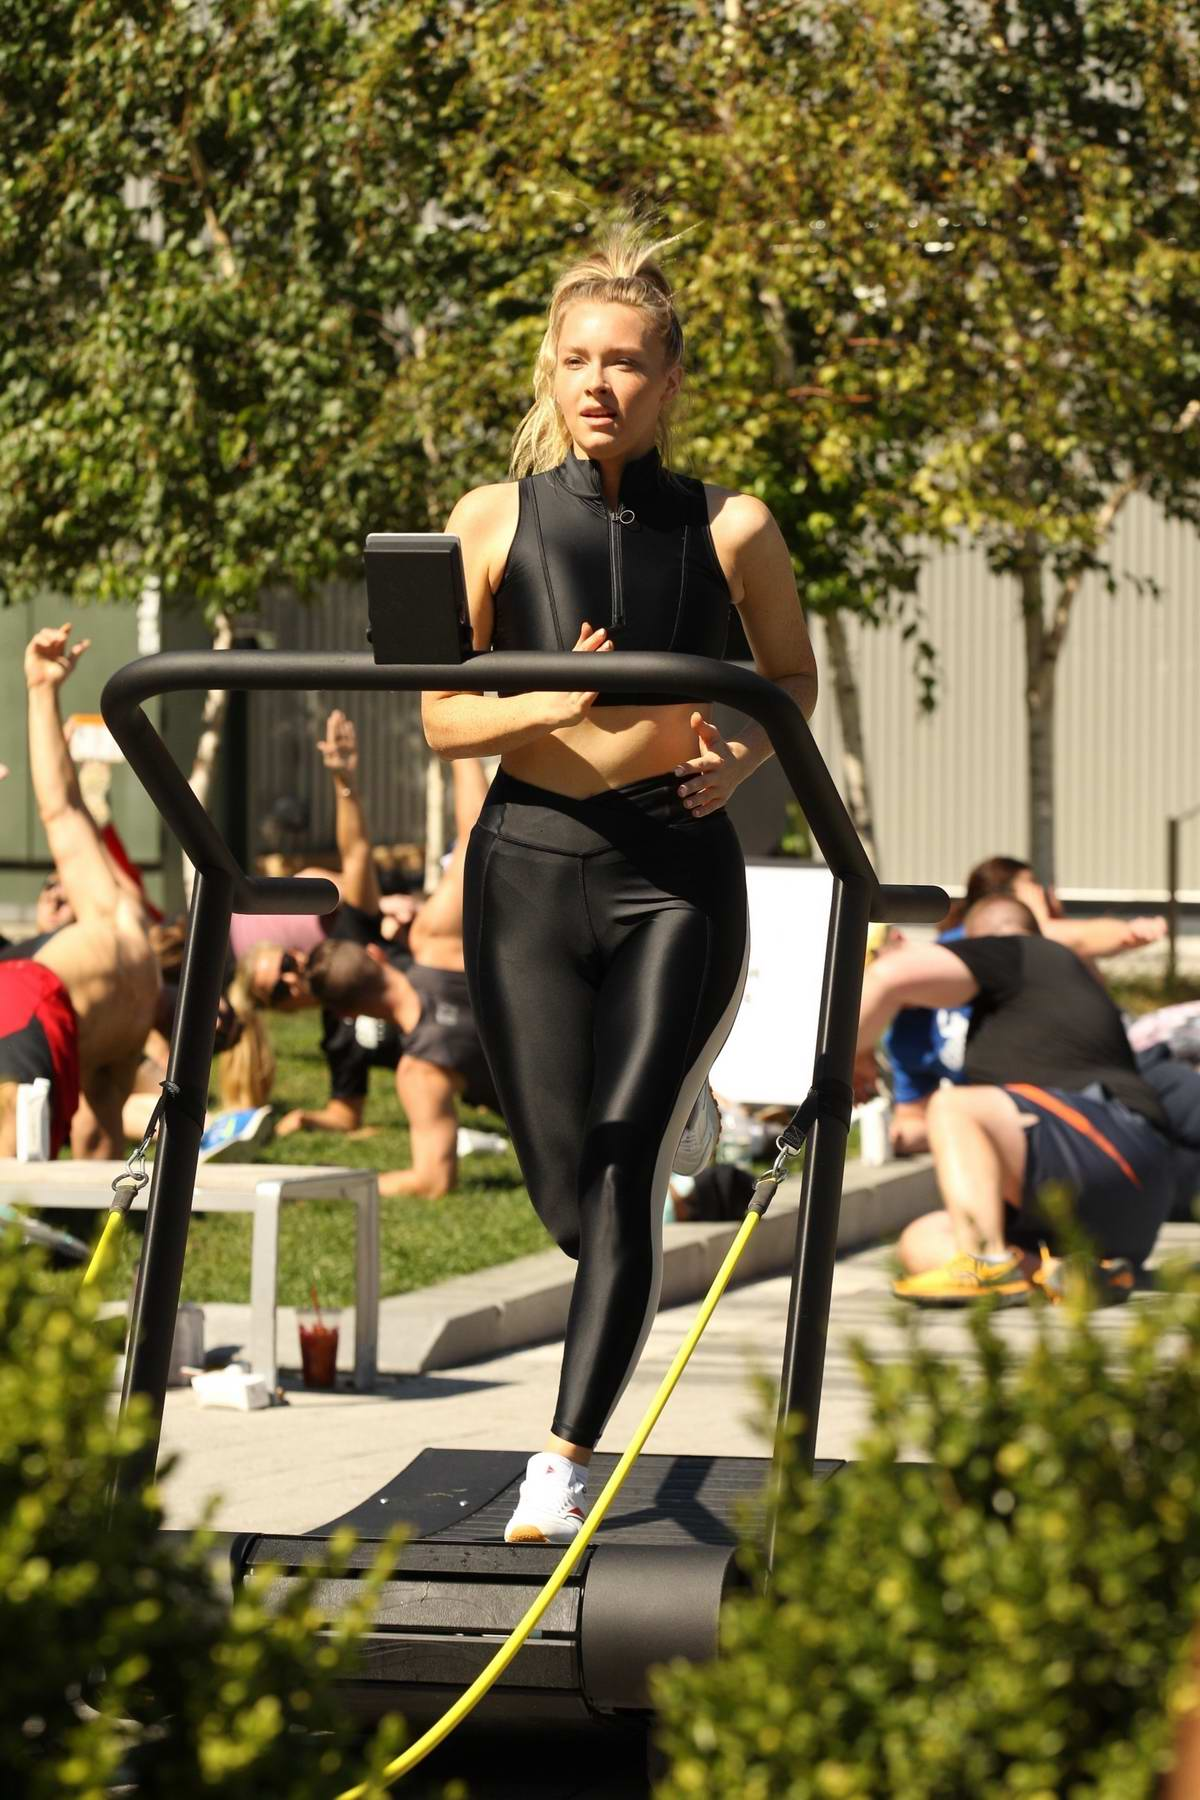 Camille Kostek and Rob Gronkowski lead a workout session for Gronk Nation Fitness in Boston, Massachusetts